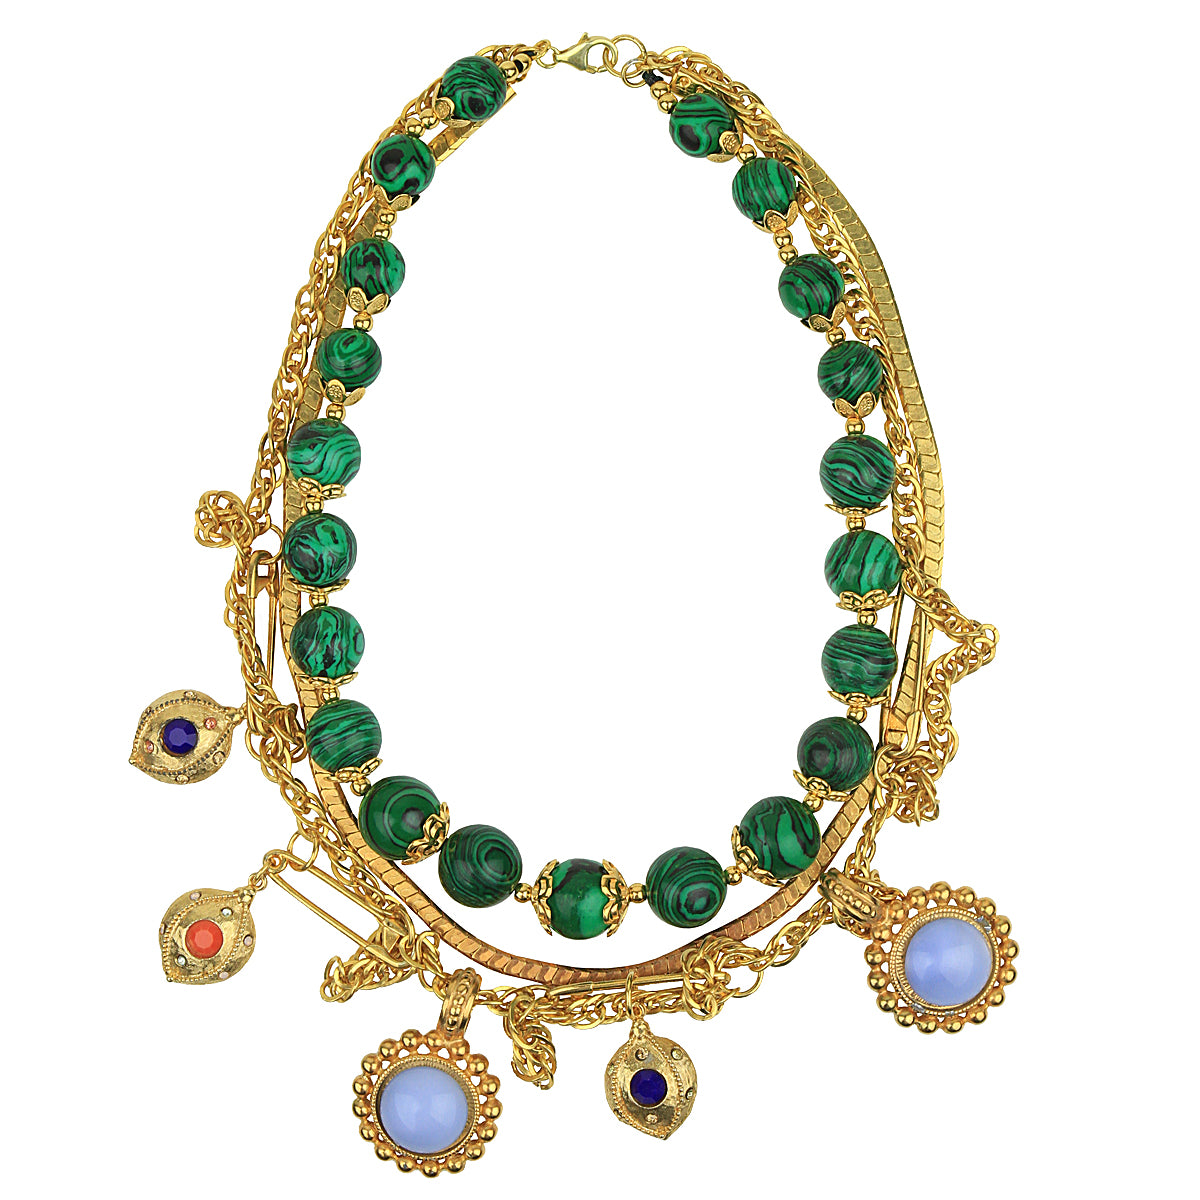 Claudia Vintage Chain and Malachite Short Necklace with Charms